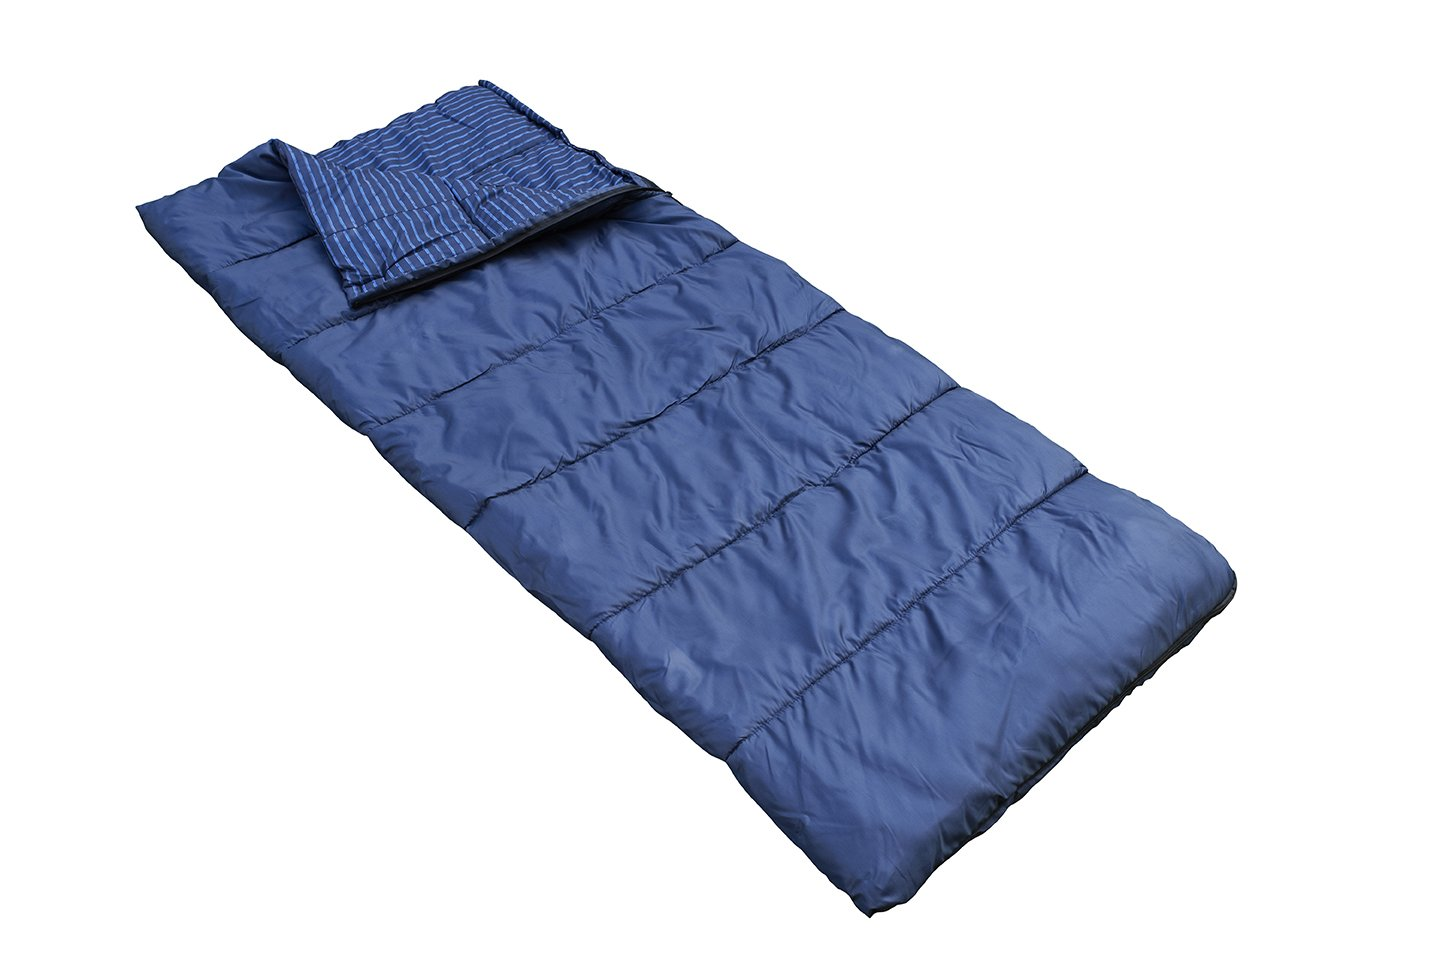 Regatta Maui Double Sleeping Bag